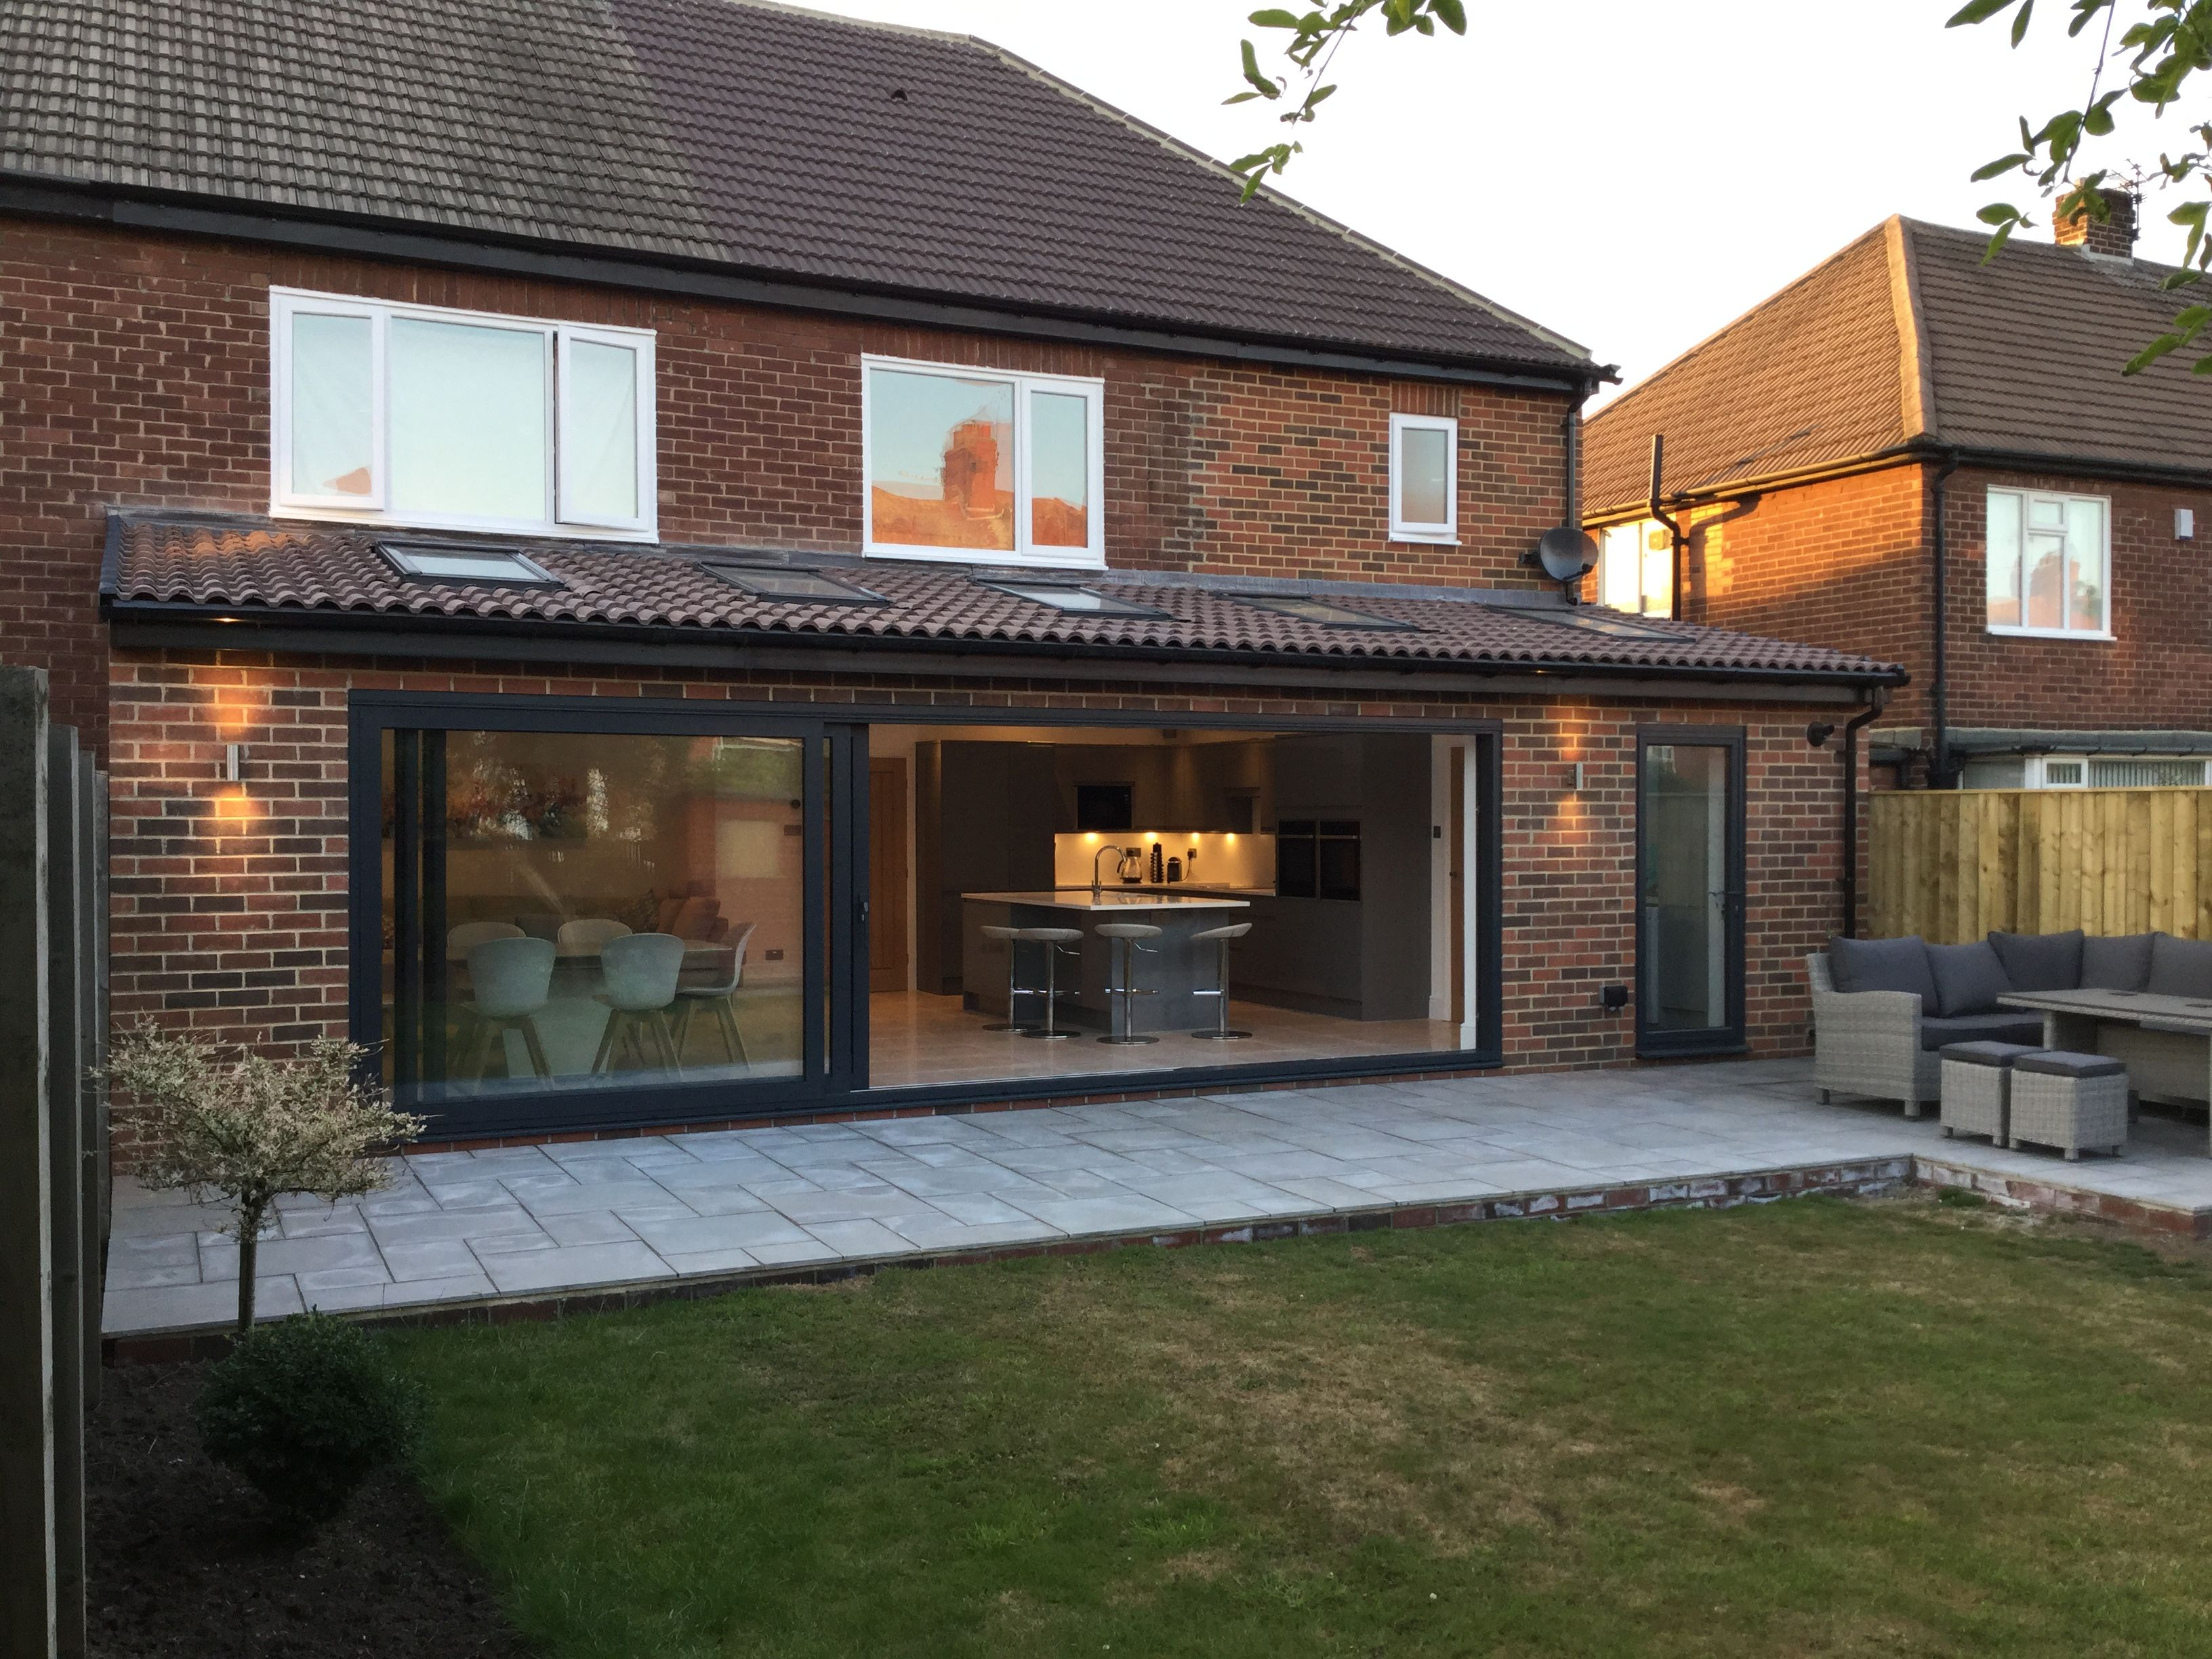 Rear And Side Extension In Tynemouth Jd Homes In 2020 House Extension Plans House Extension Design Garden Room Extensions Backyard house extension ideas